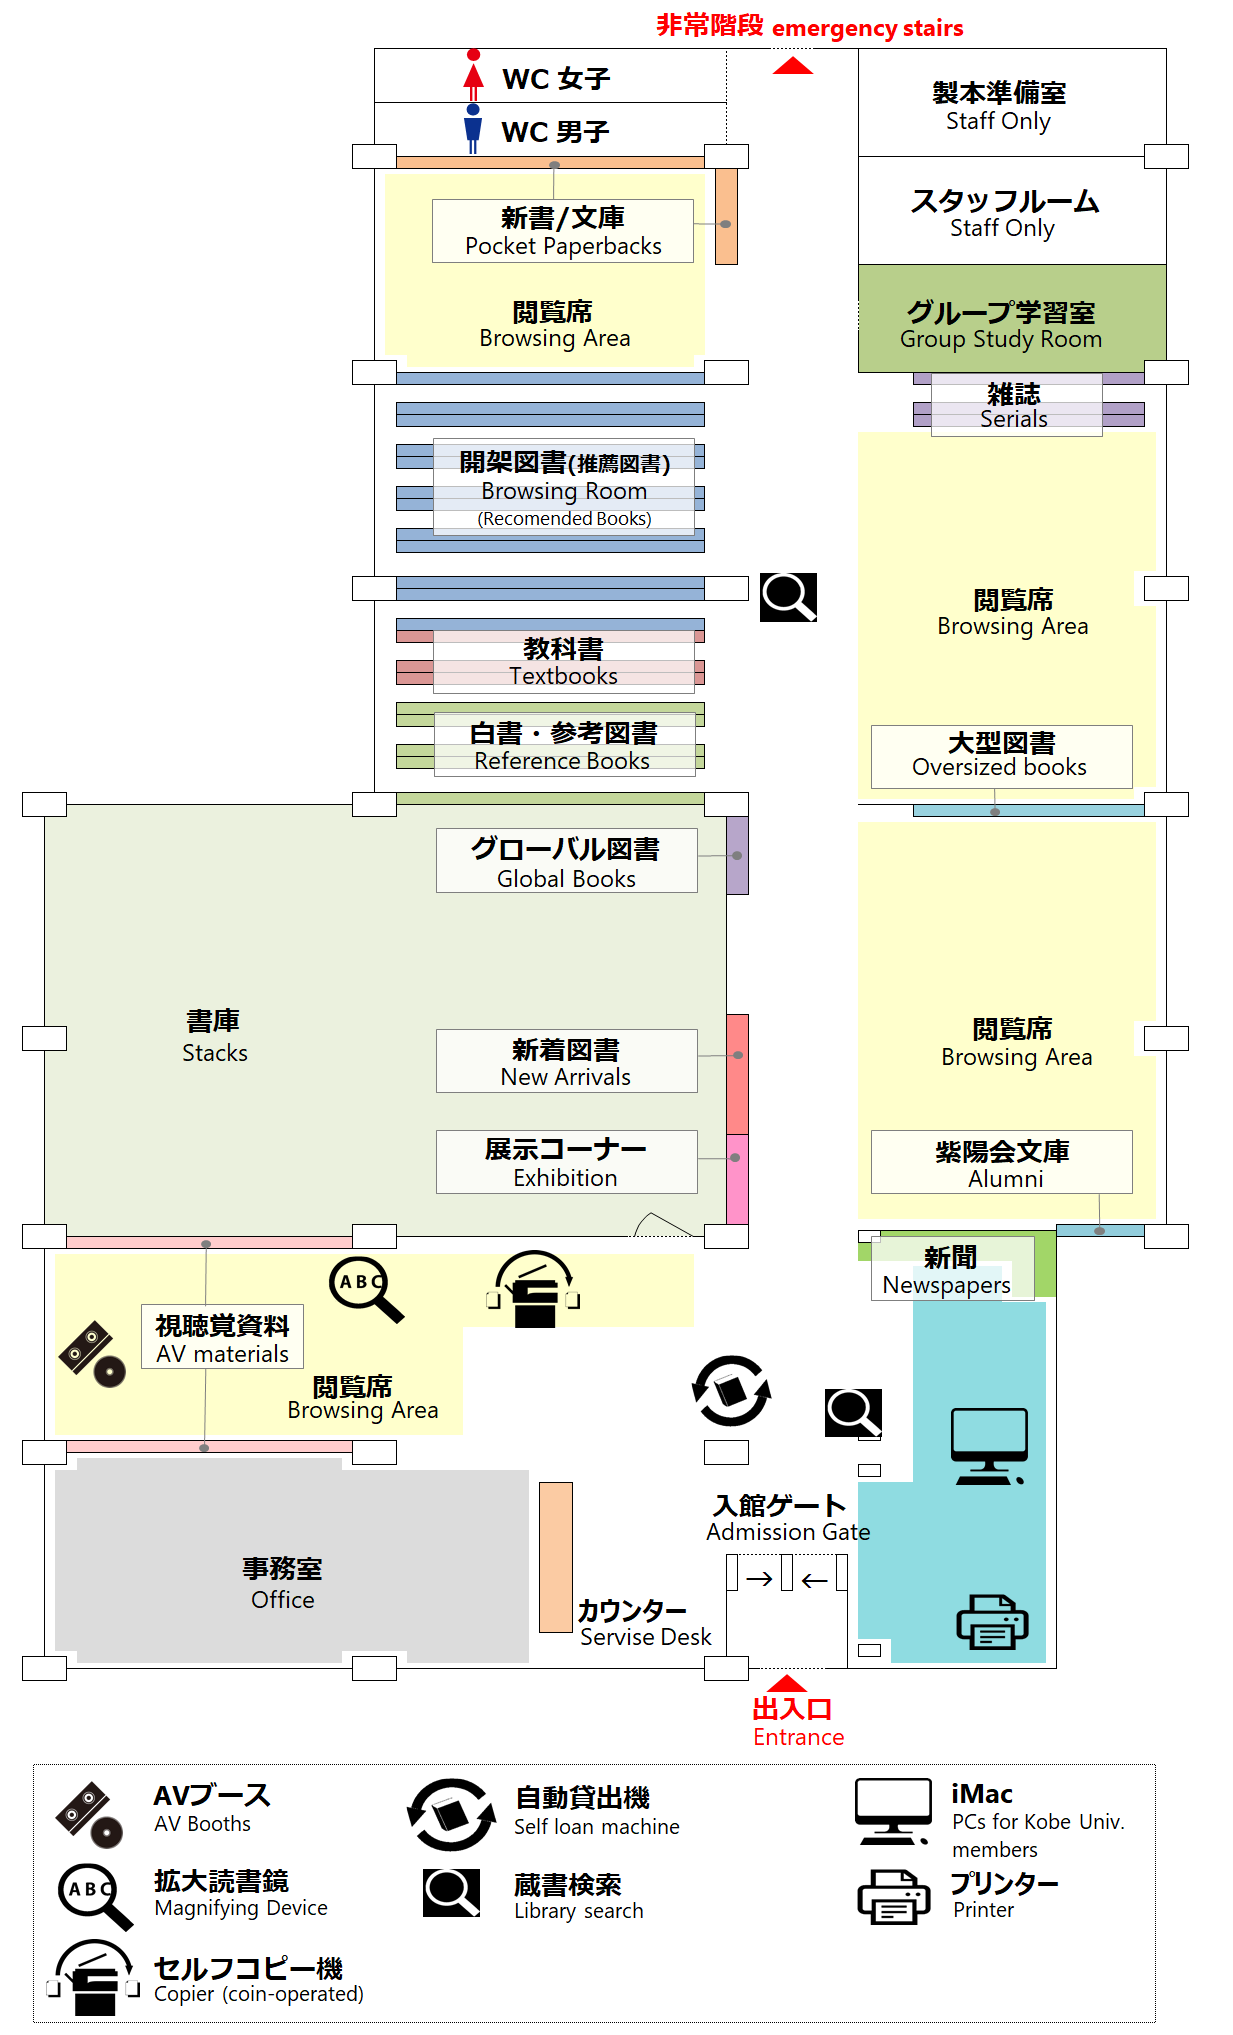 Floor Map of the Library for Human Development Sciences